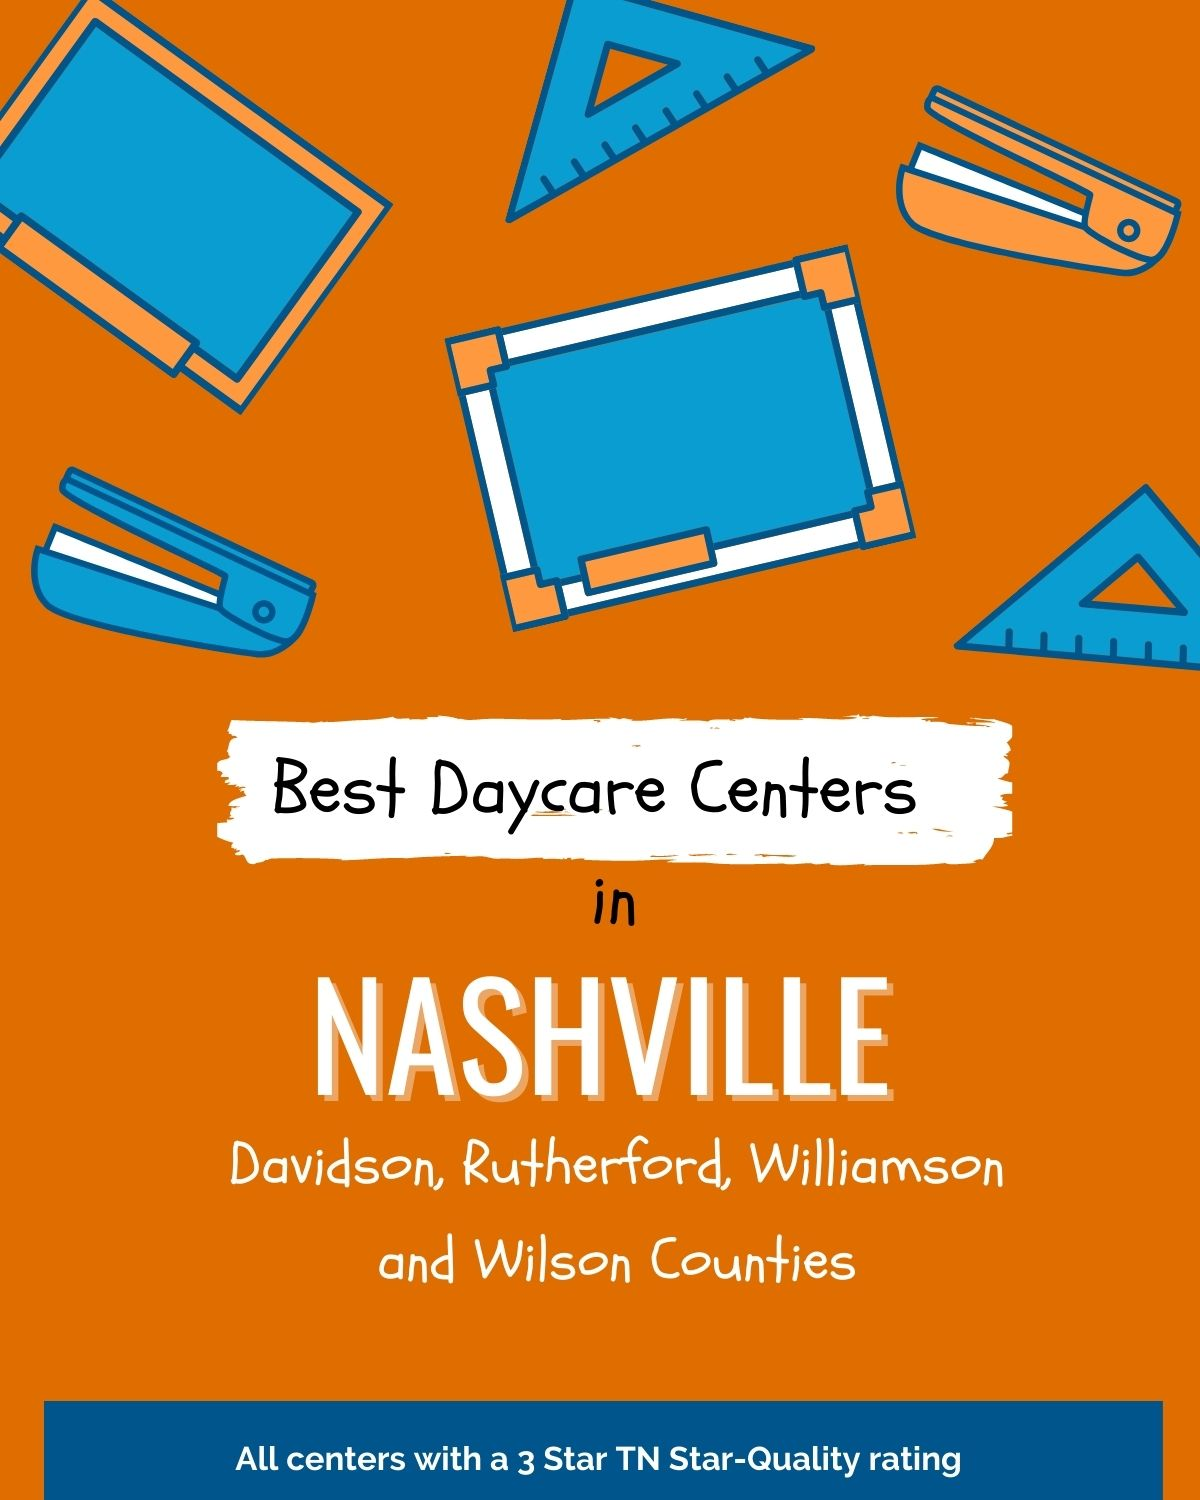 Poster image of white text on orange background for best daycares in Nashville.